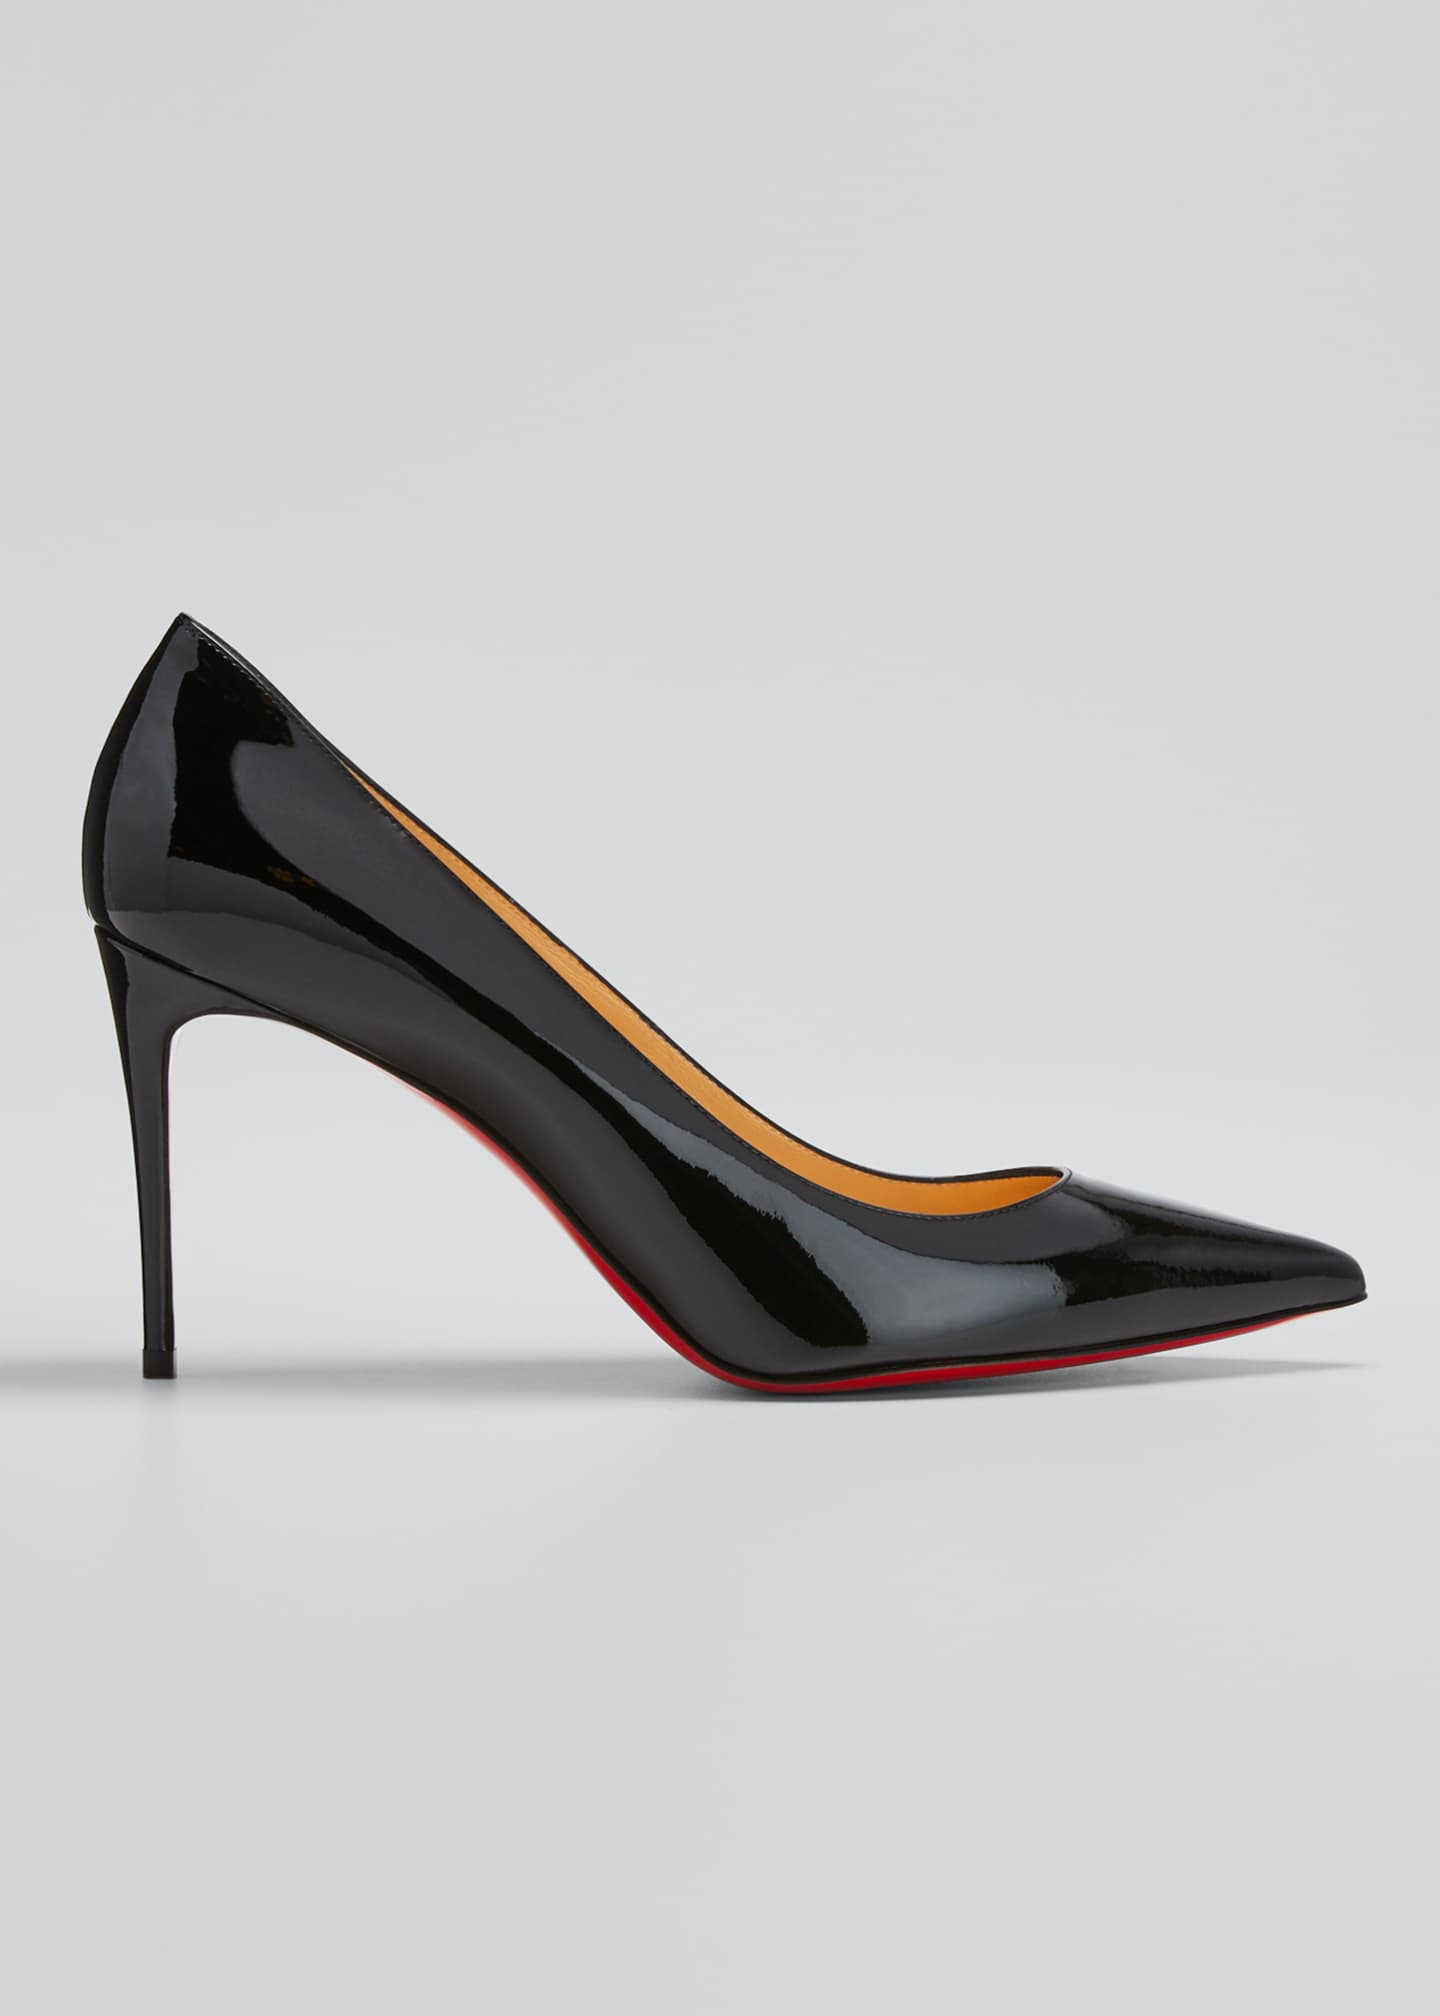 Image 1 of 5: Decollete 85mm Patent Leather Red Sole Pump